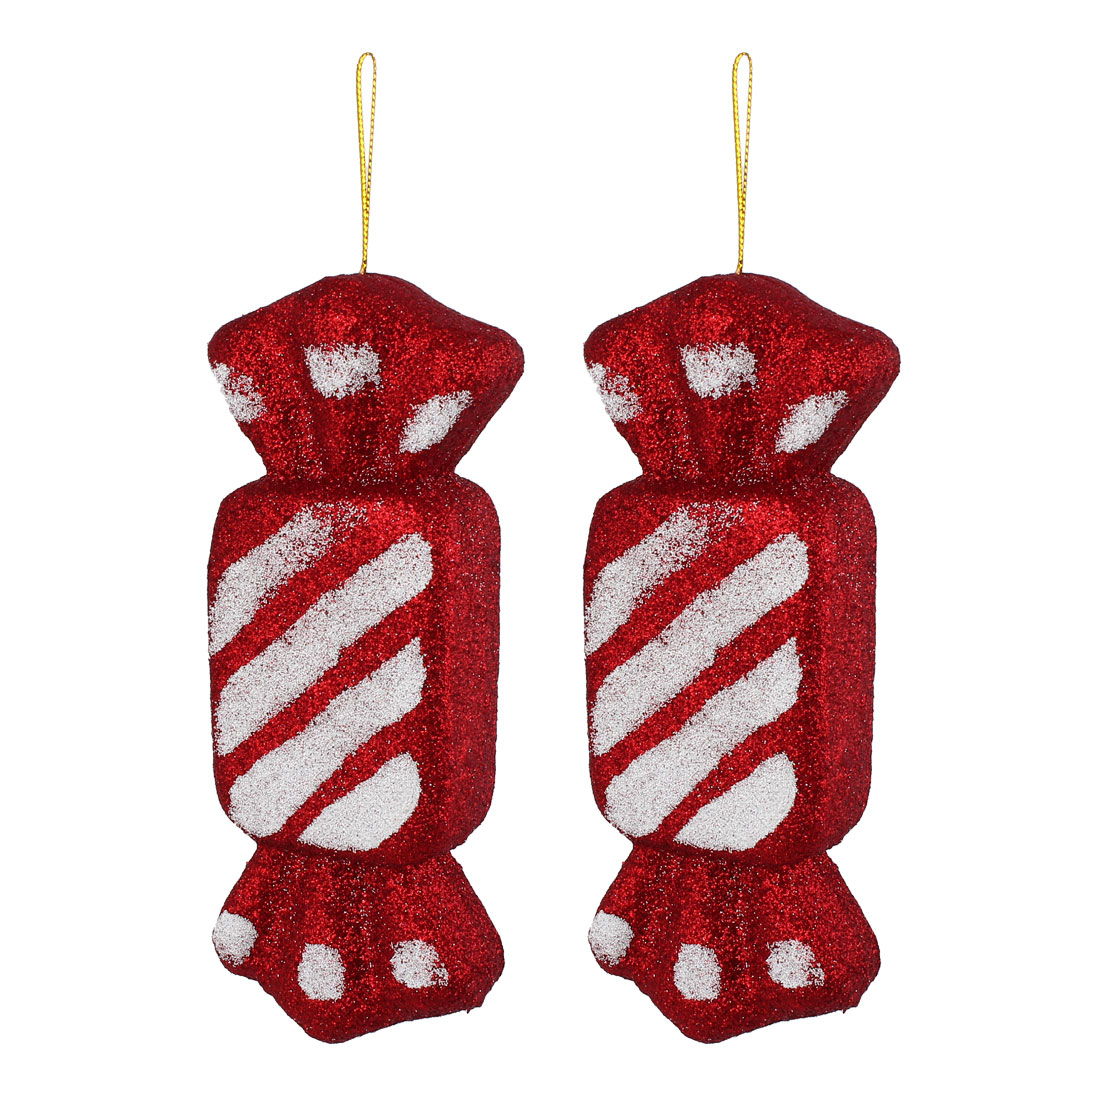 2 Pcs Glittery Hanging Christmas Candy Confectionery Pendant Burgundy for Xmas Tree Decor